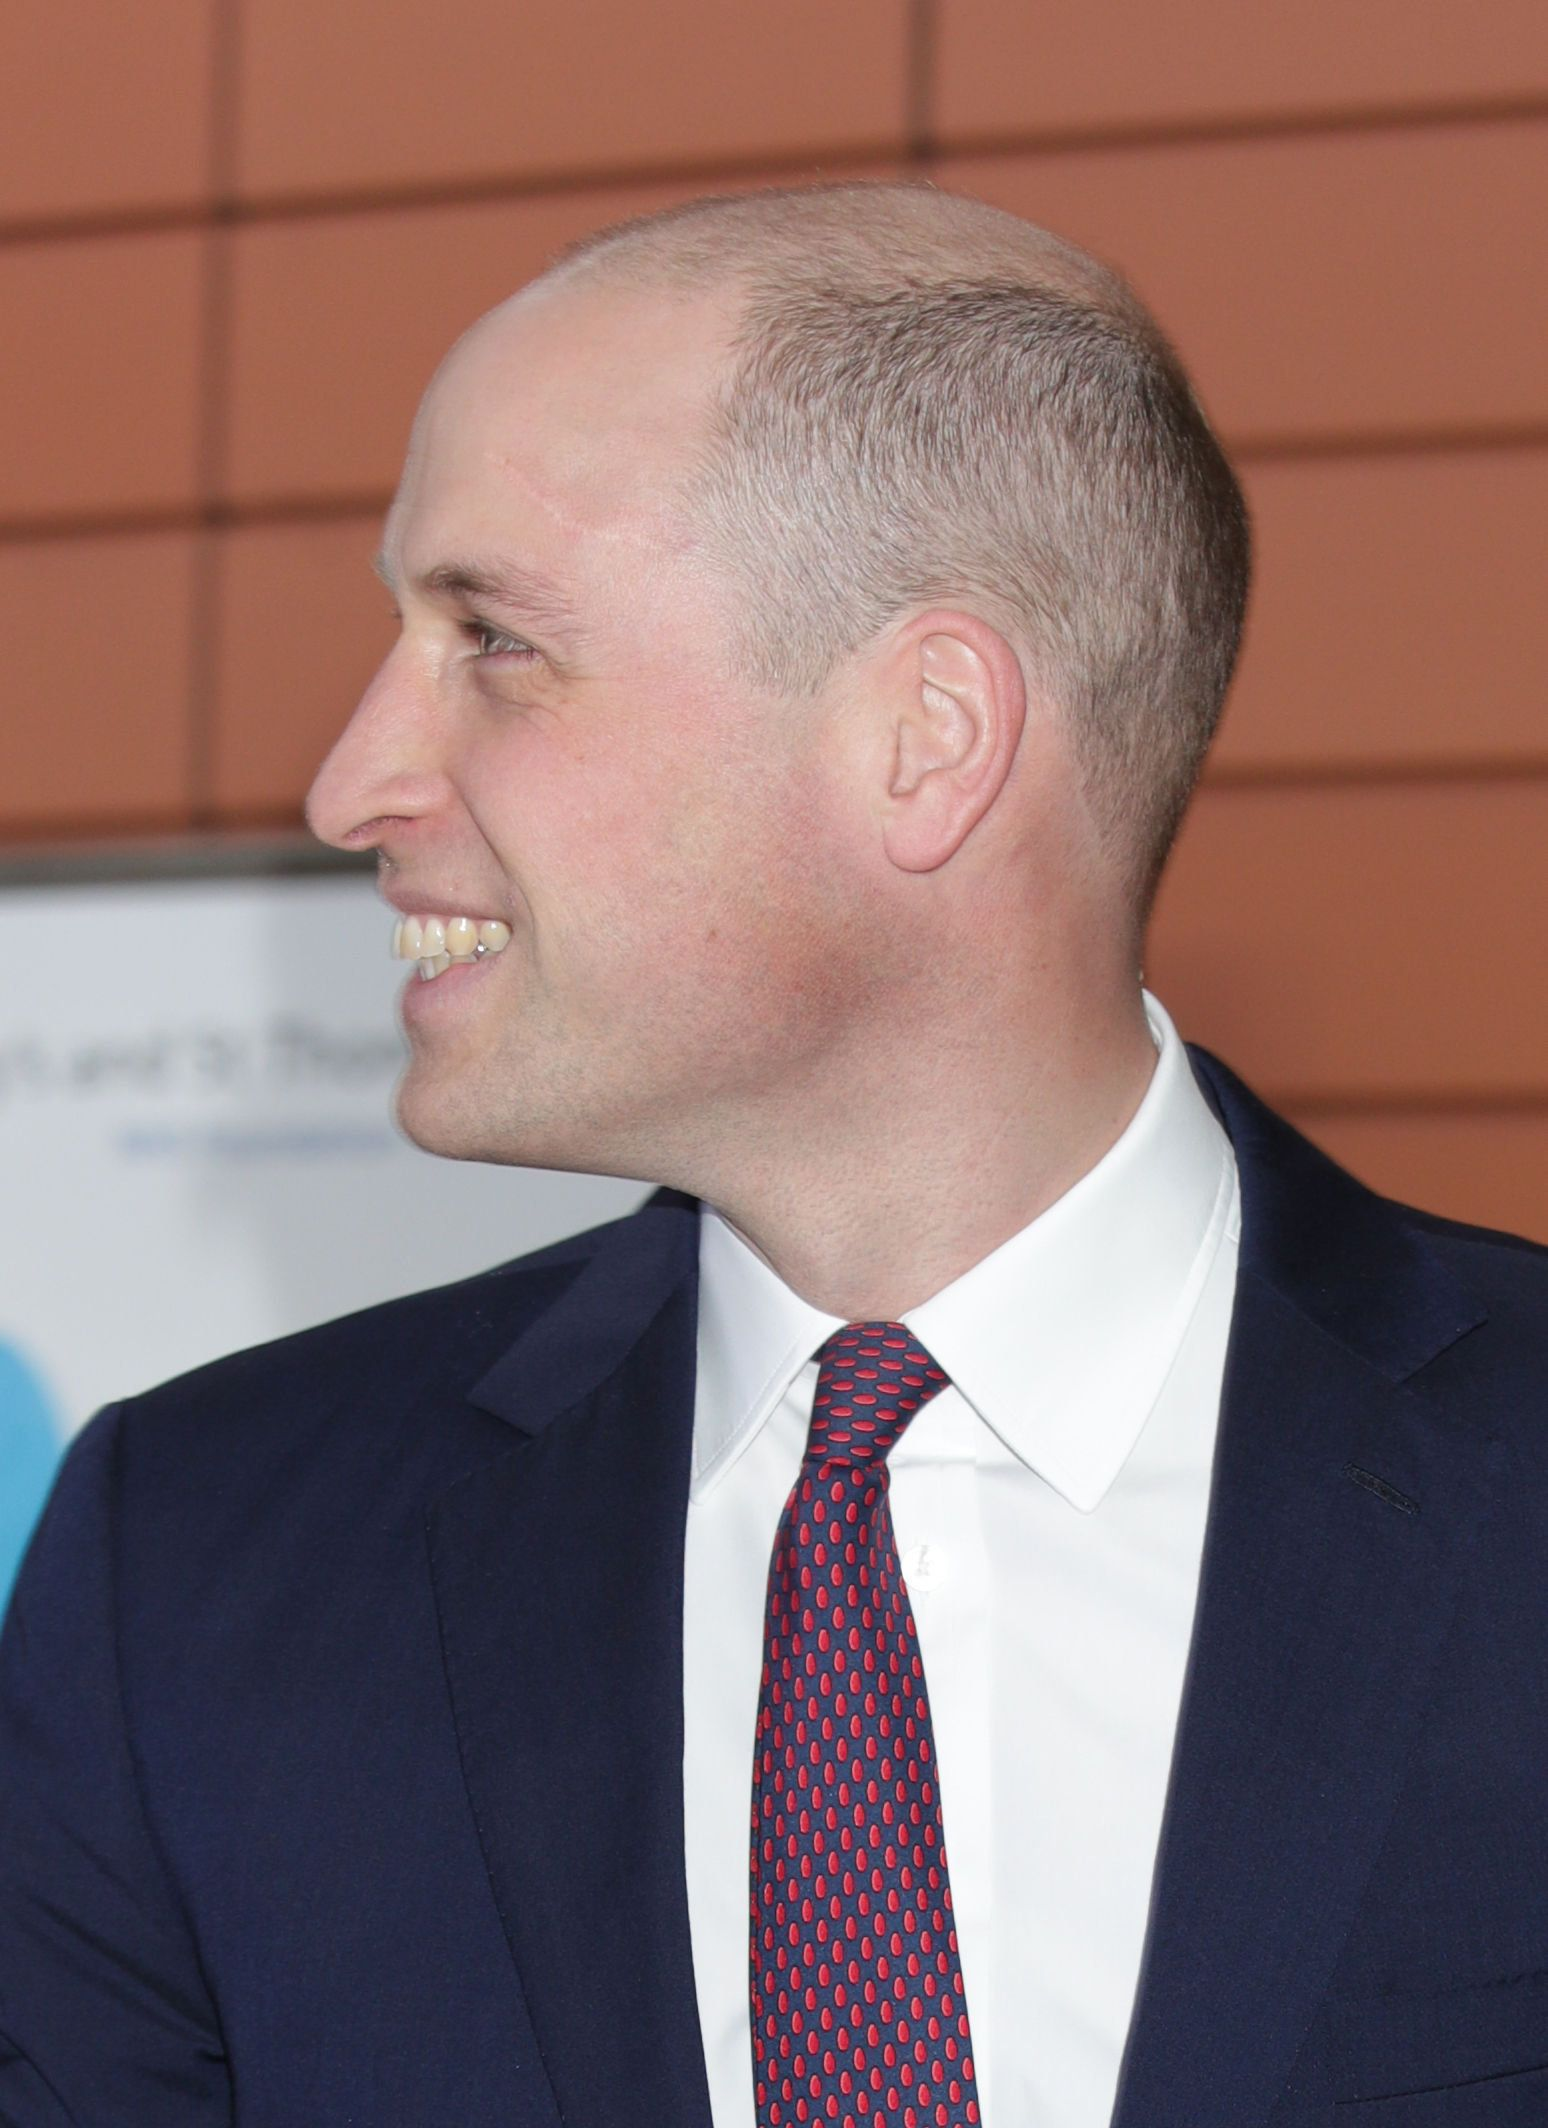 Prince William's short crop earned high praise.